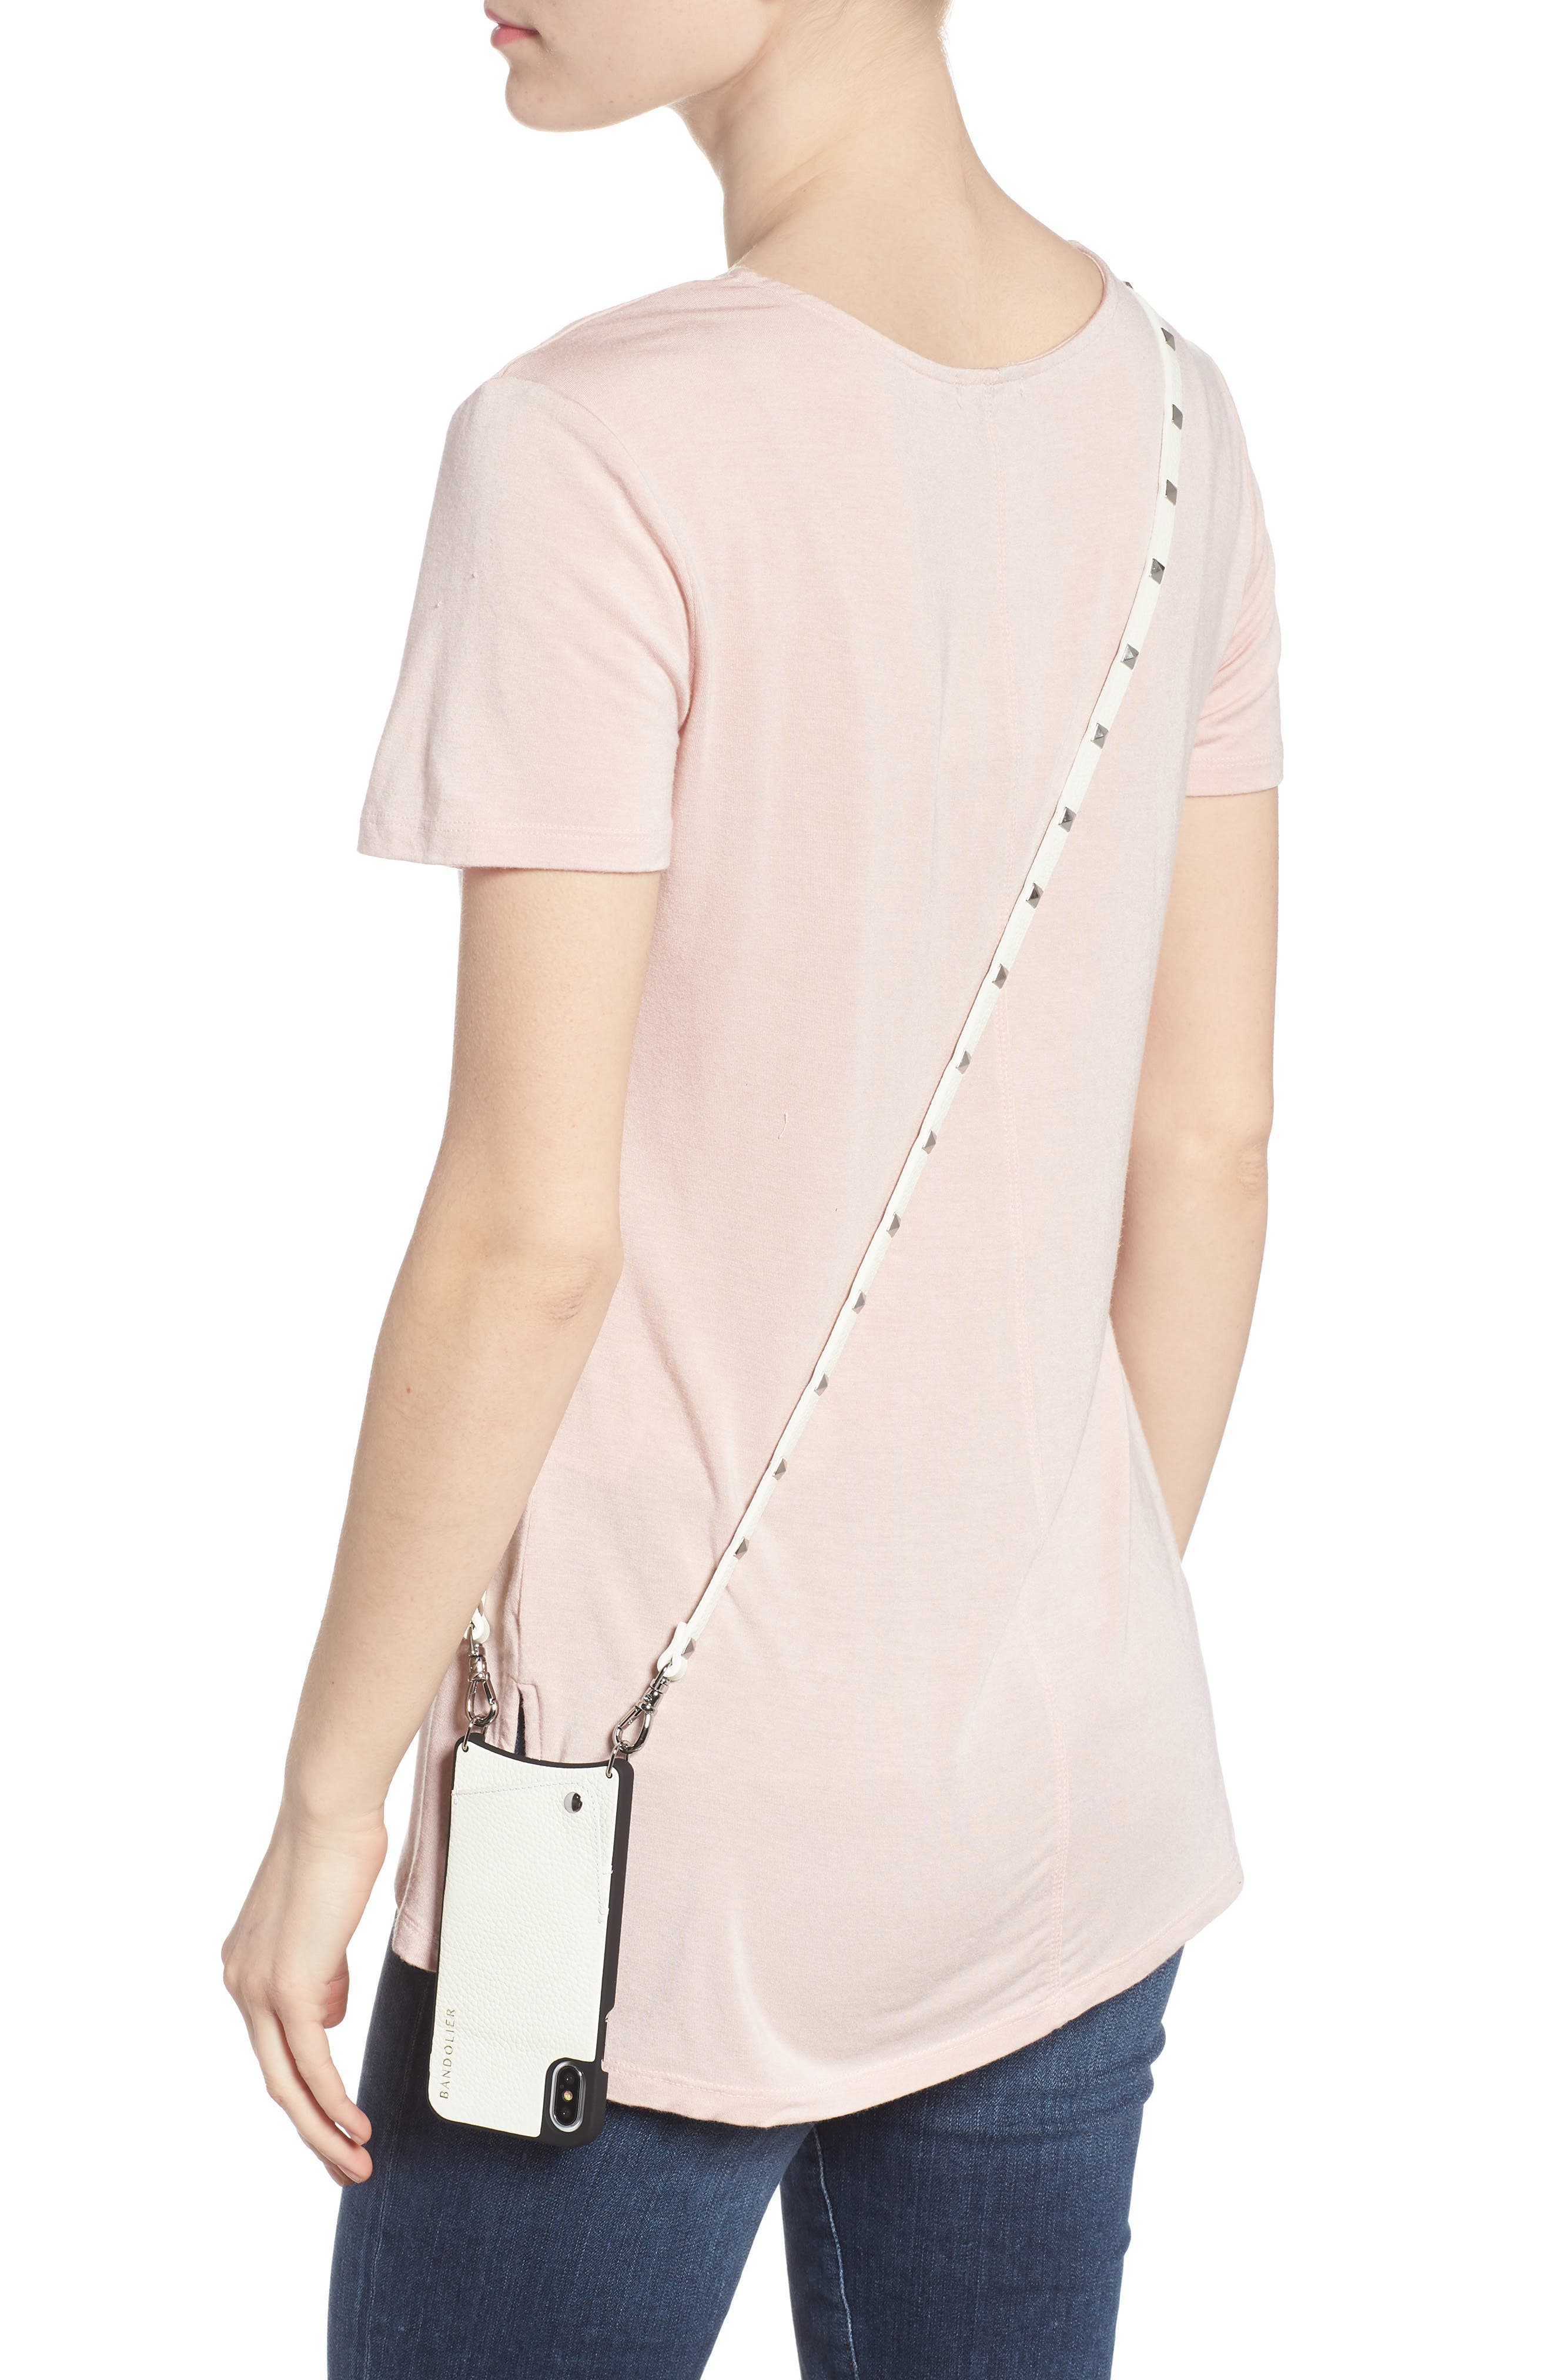 Sarah Leather iPhone X Crossbody Case,                             Alternate thumbnail 2, color,                             White/ Silver